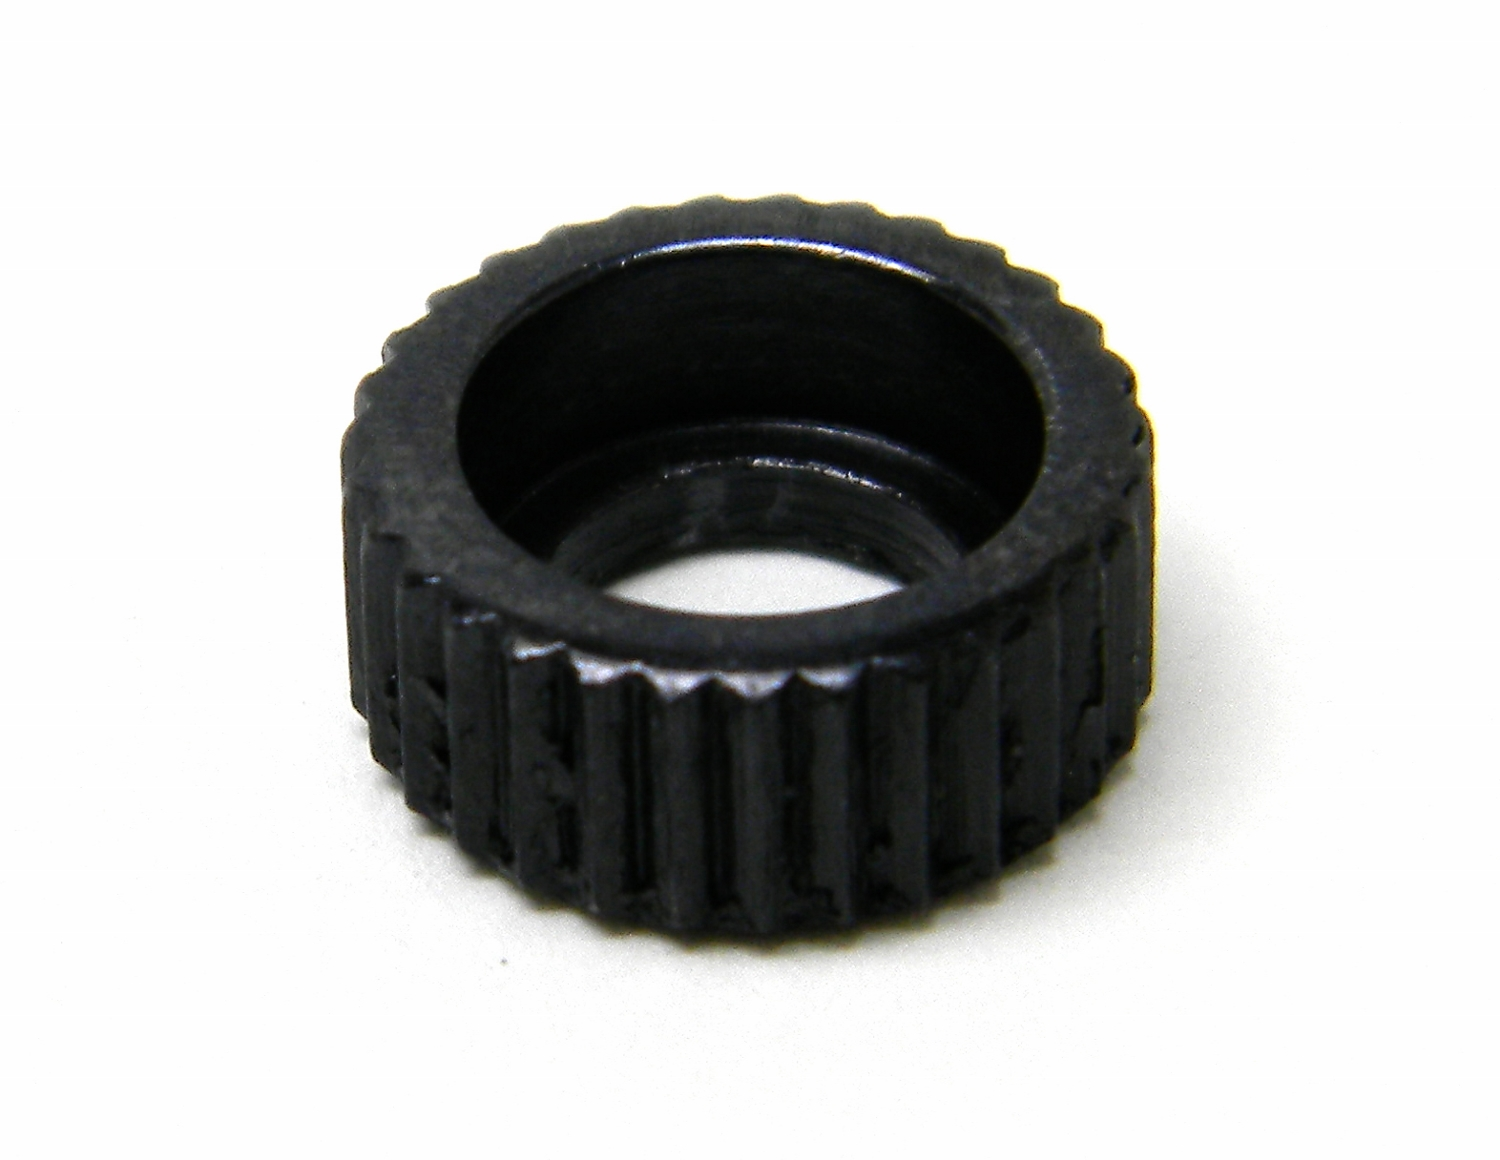 BROWNING FRONT FOREND 3RD SCREW WASHER 003 (1500x1160)